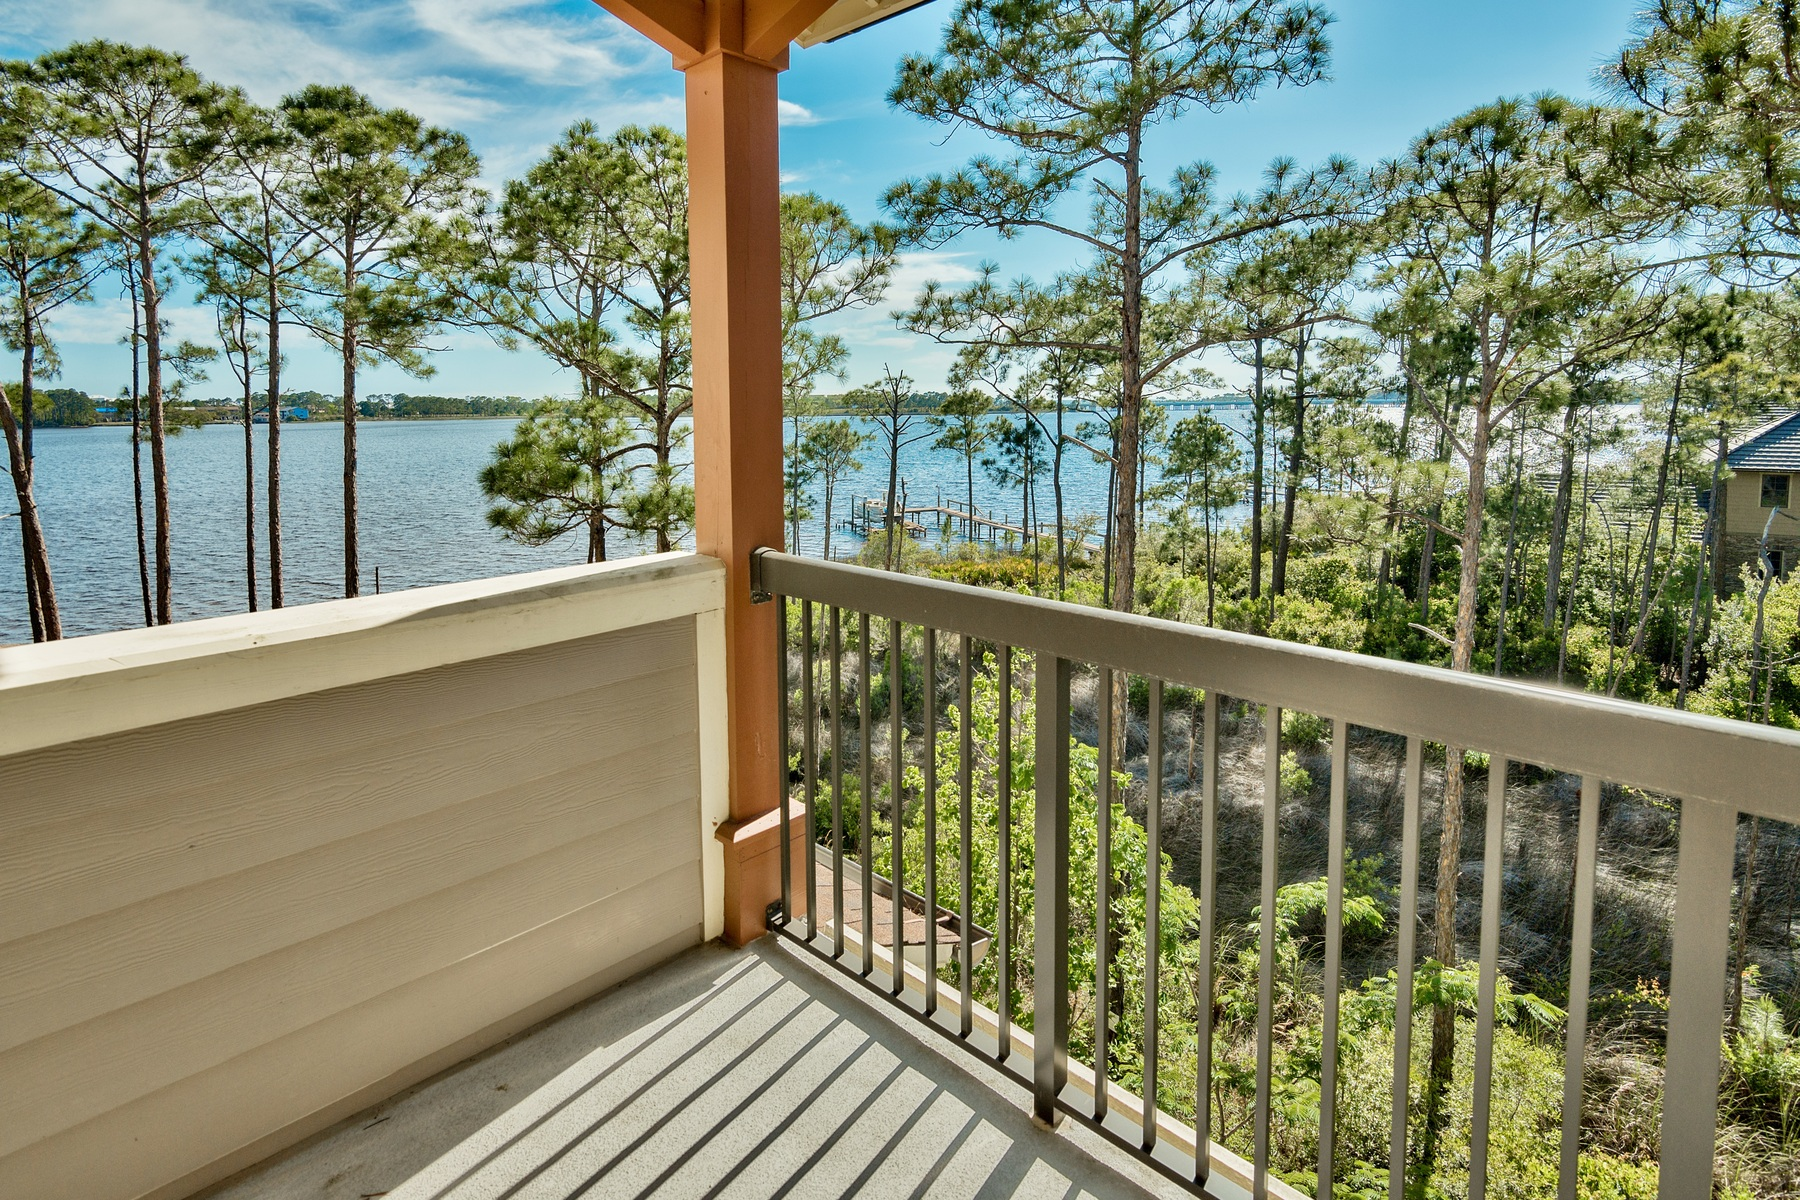 Condominio por un Venta en BREATHTAKING LAKEFRONT VIEWS WITH TOP AMENITIES 1101 Sawgrass Court 303 Wild Heron, Panama City Beach, Florida, 32413 Estados Unidos